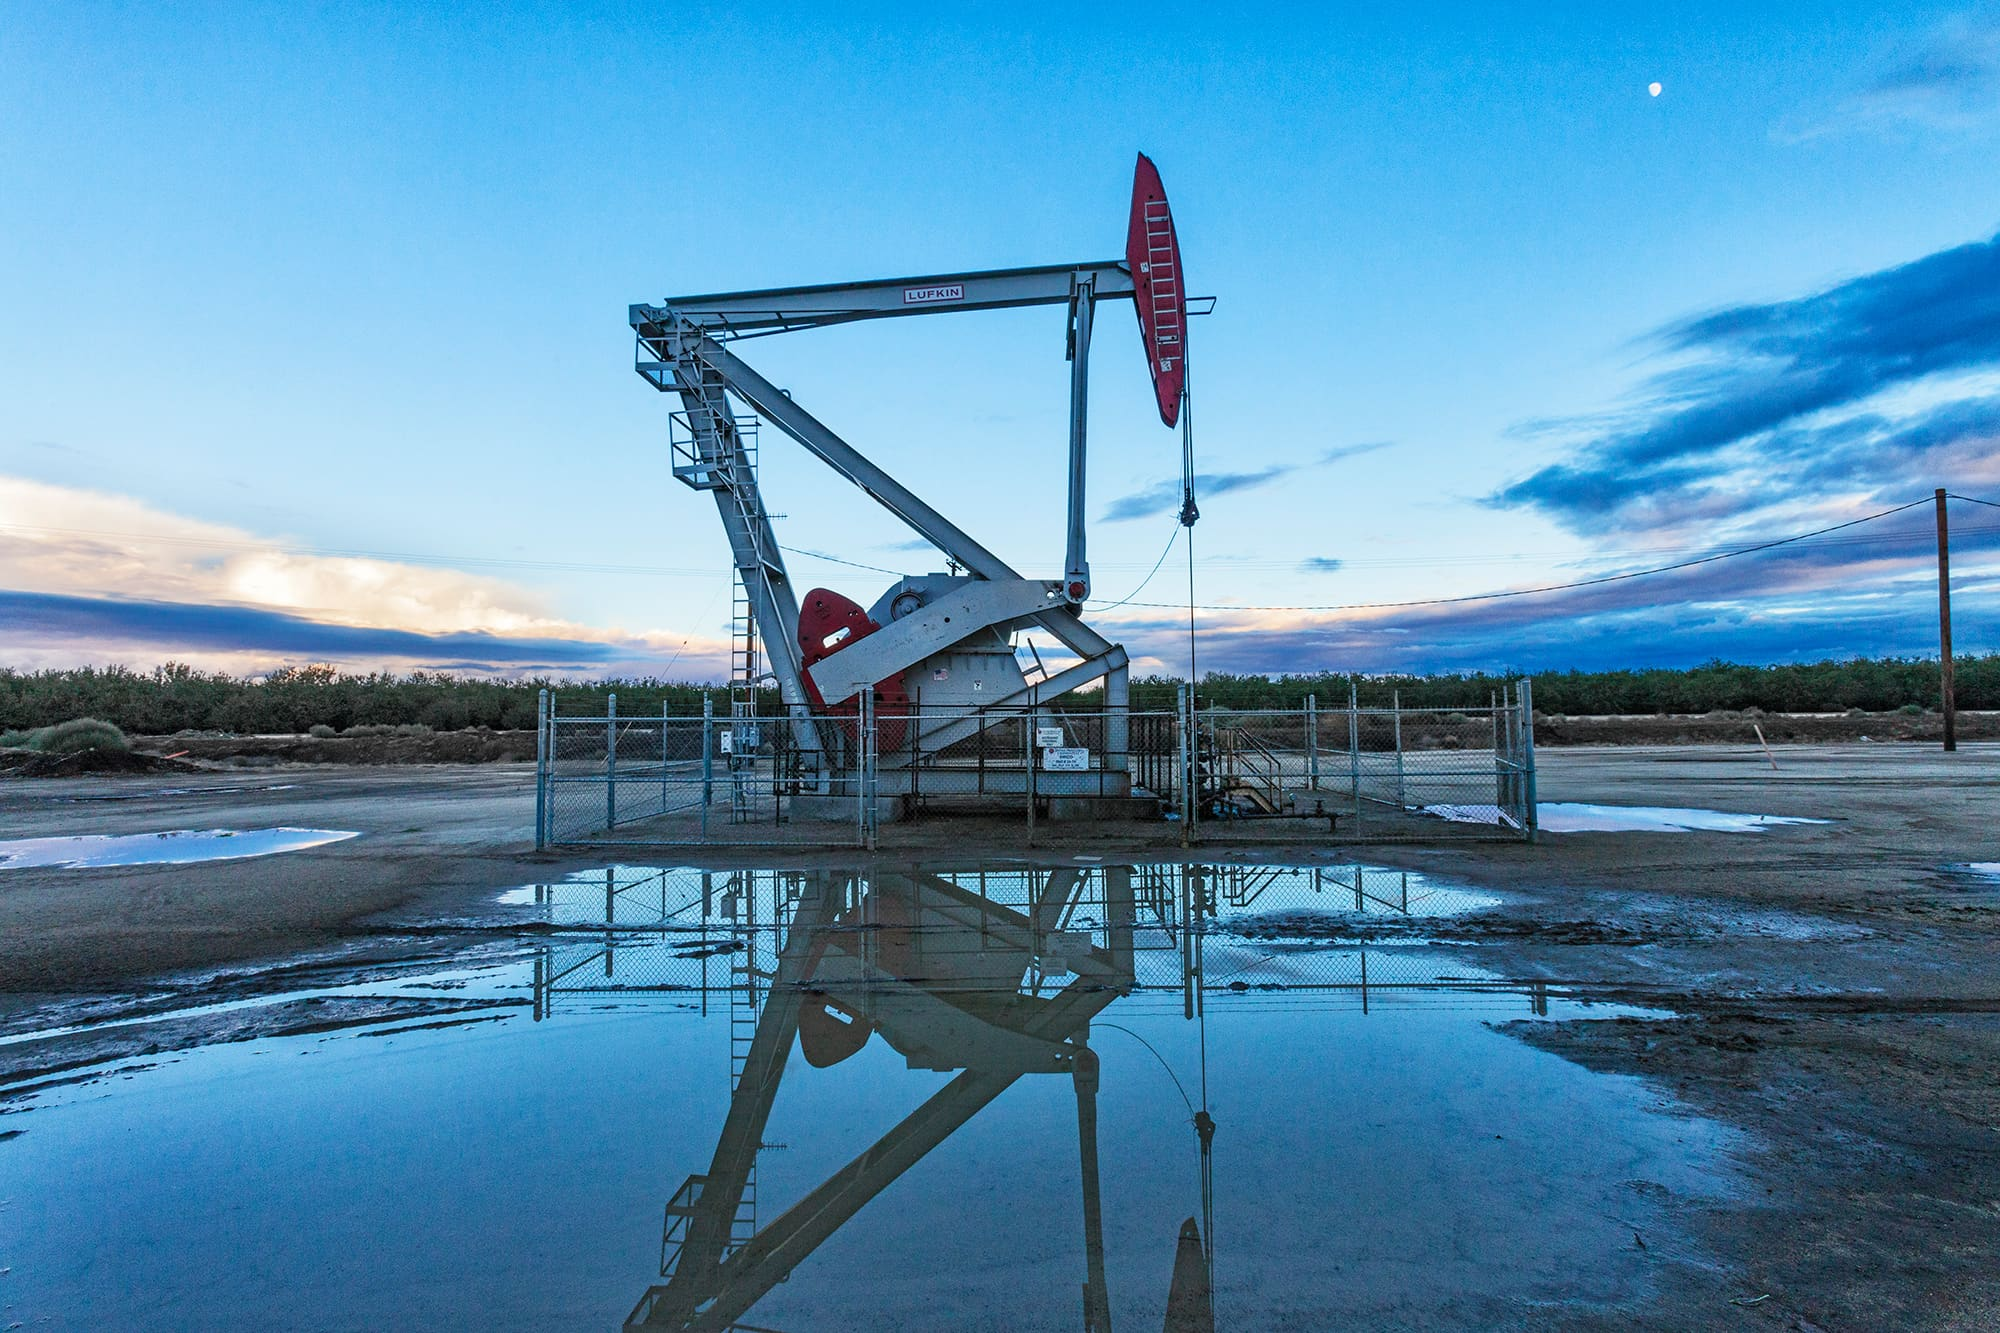 Oil Well Stock Photos. Royalty Free Oil Well Images - m Free oil well pictures